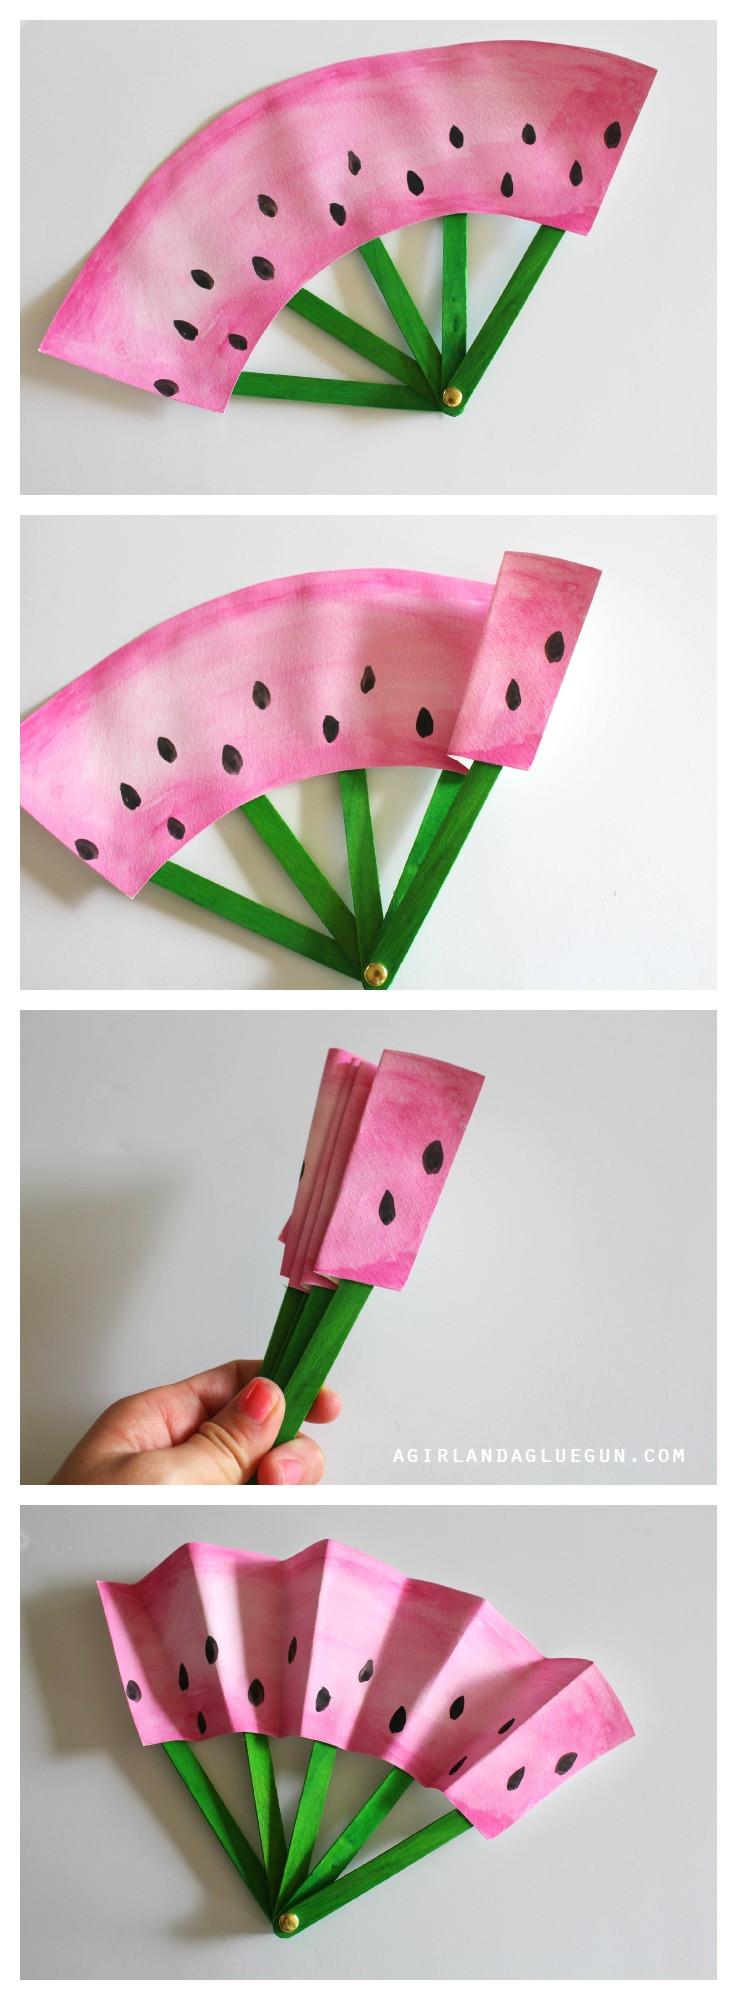 Best ideas about Cool DIY Projects For Kids . Save or Pin DIY Fruit Fans Kids Craft The Idea Room Now.